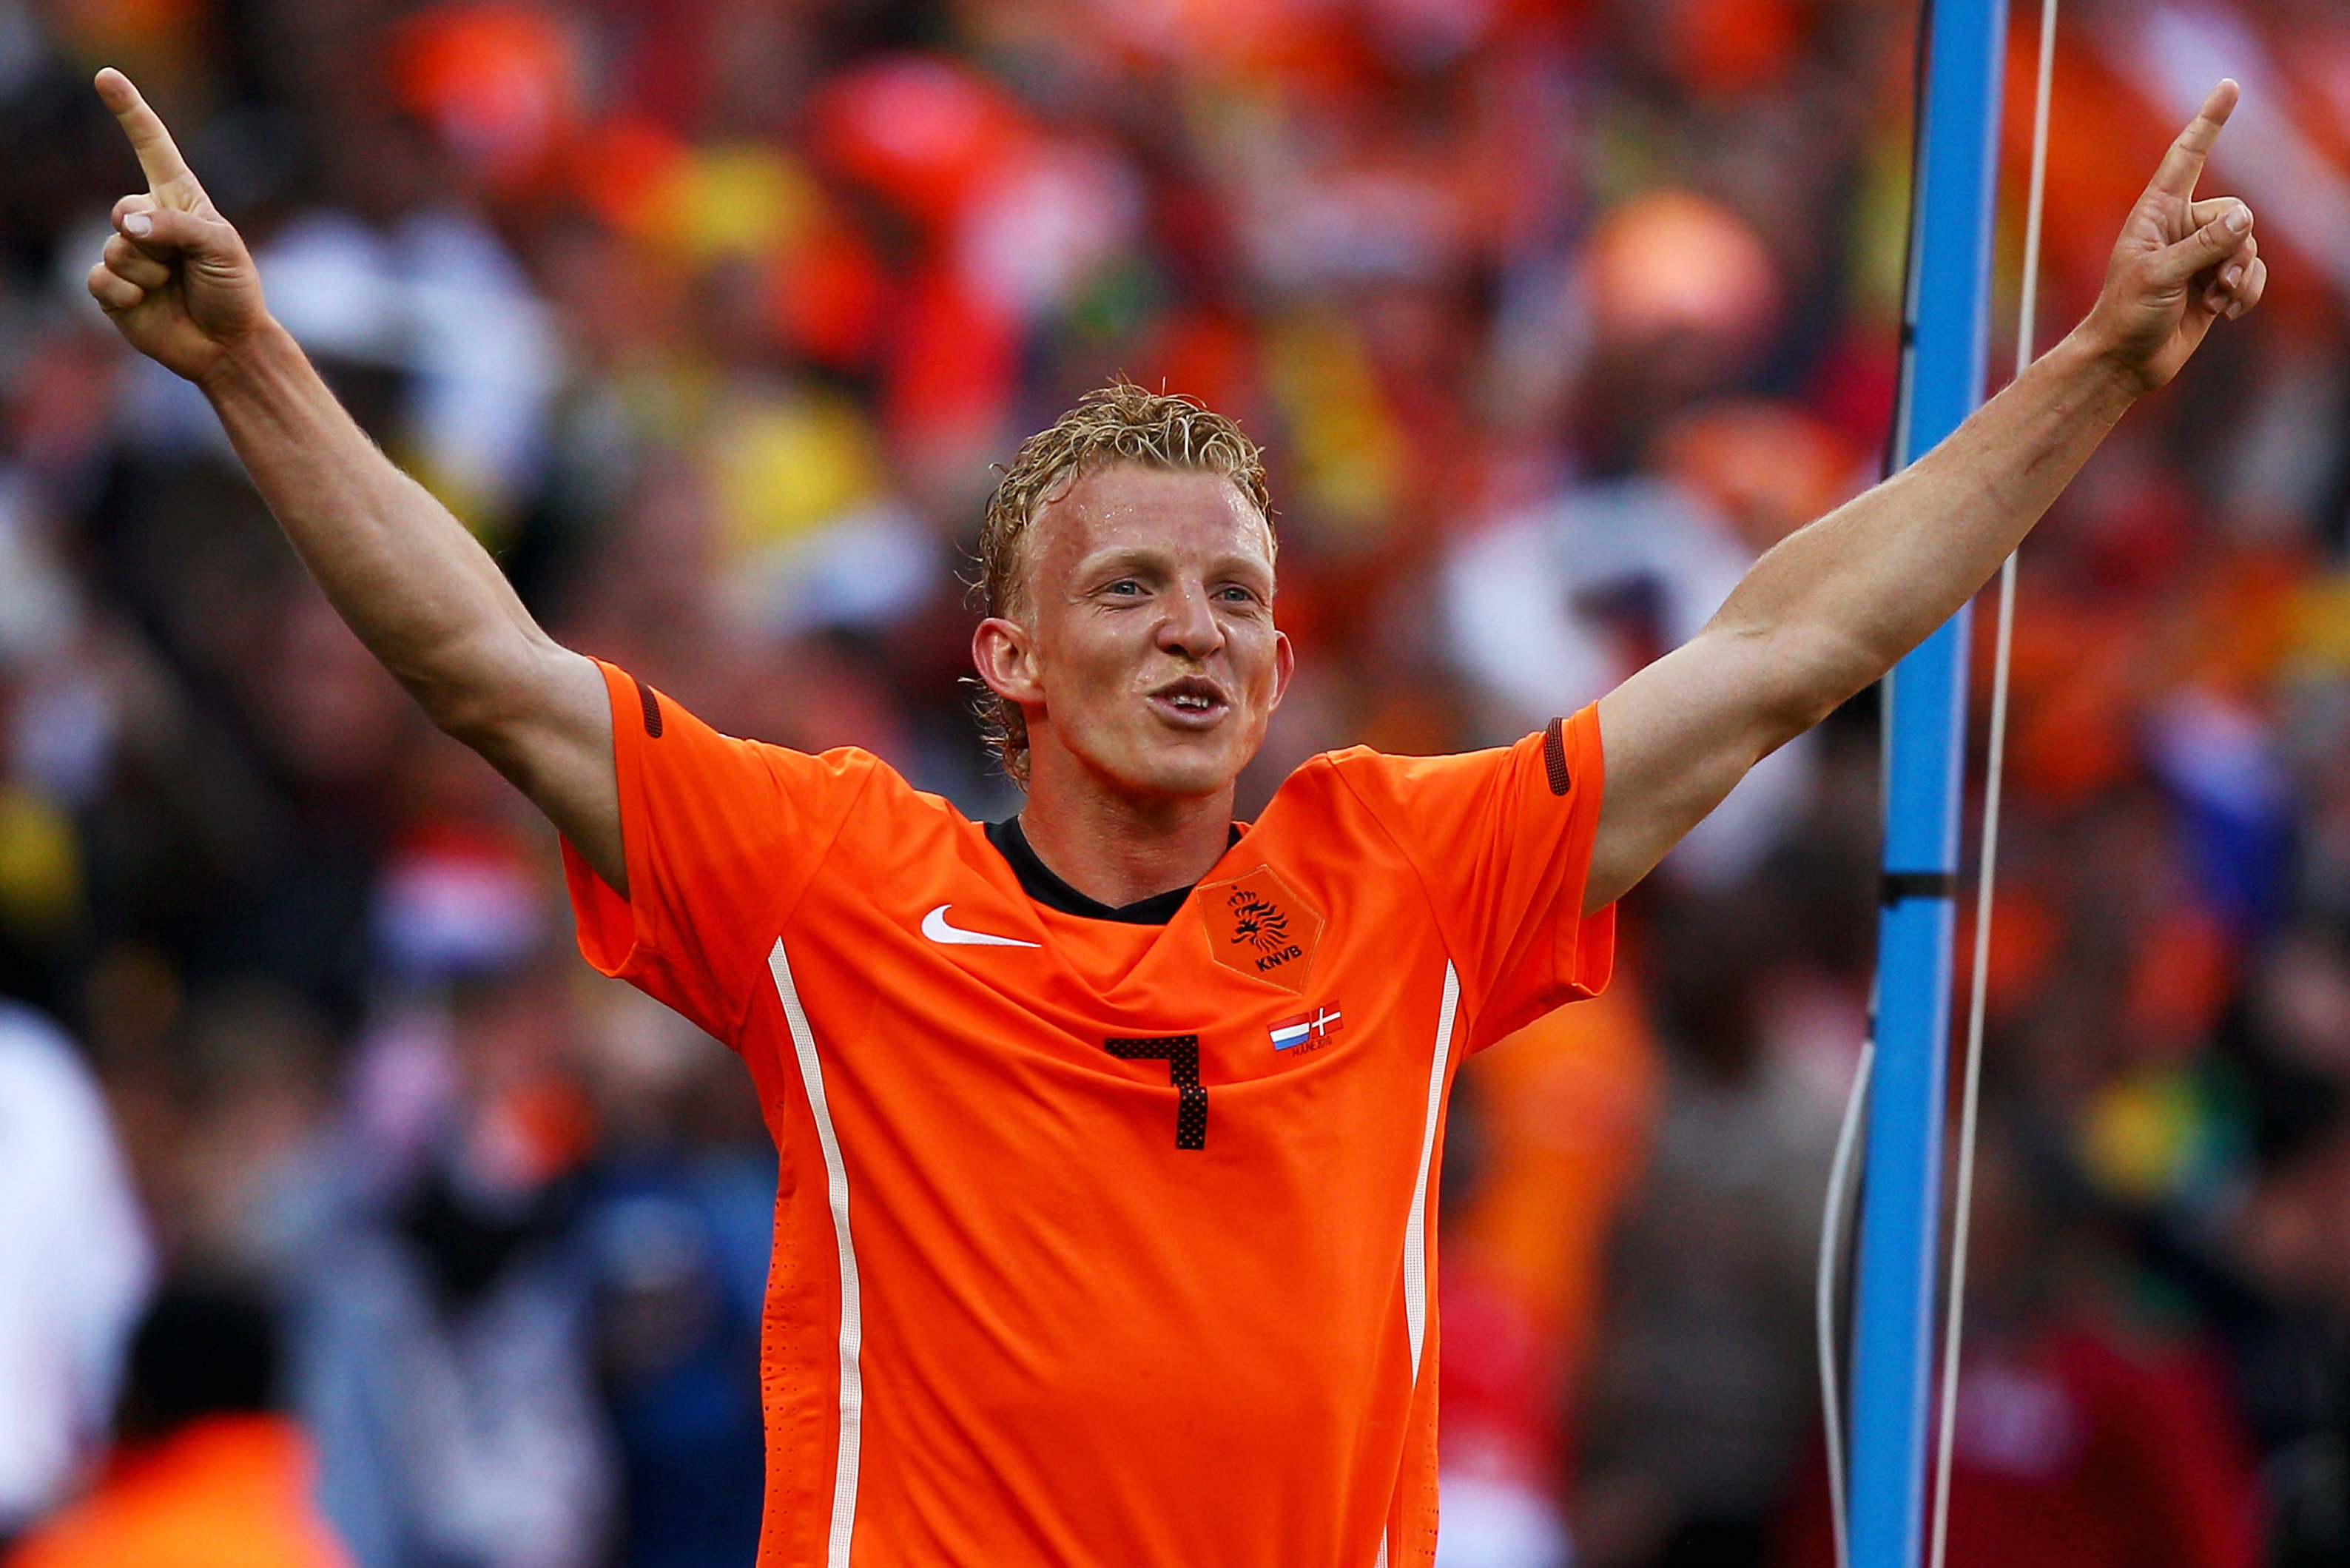 Dirk Kuyt celebrates sealing the Netherlands' win over Denmark.